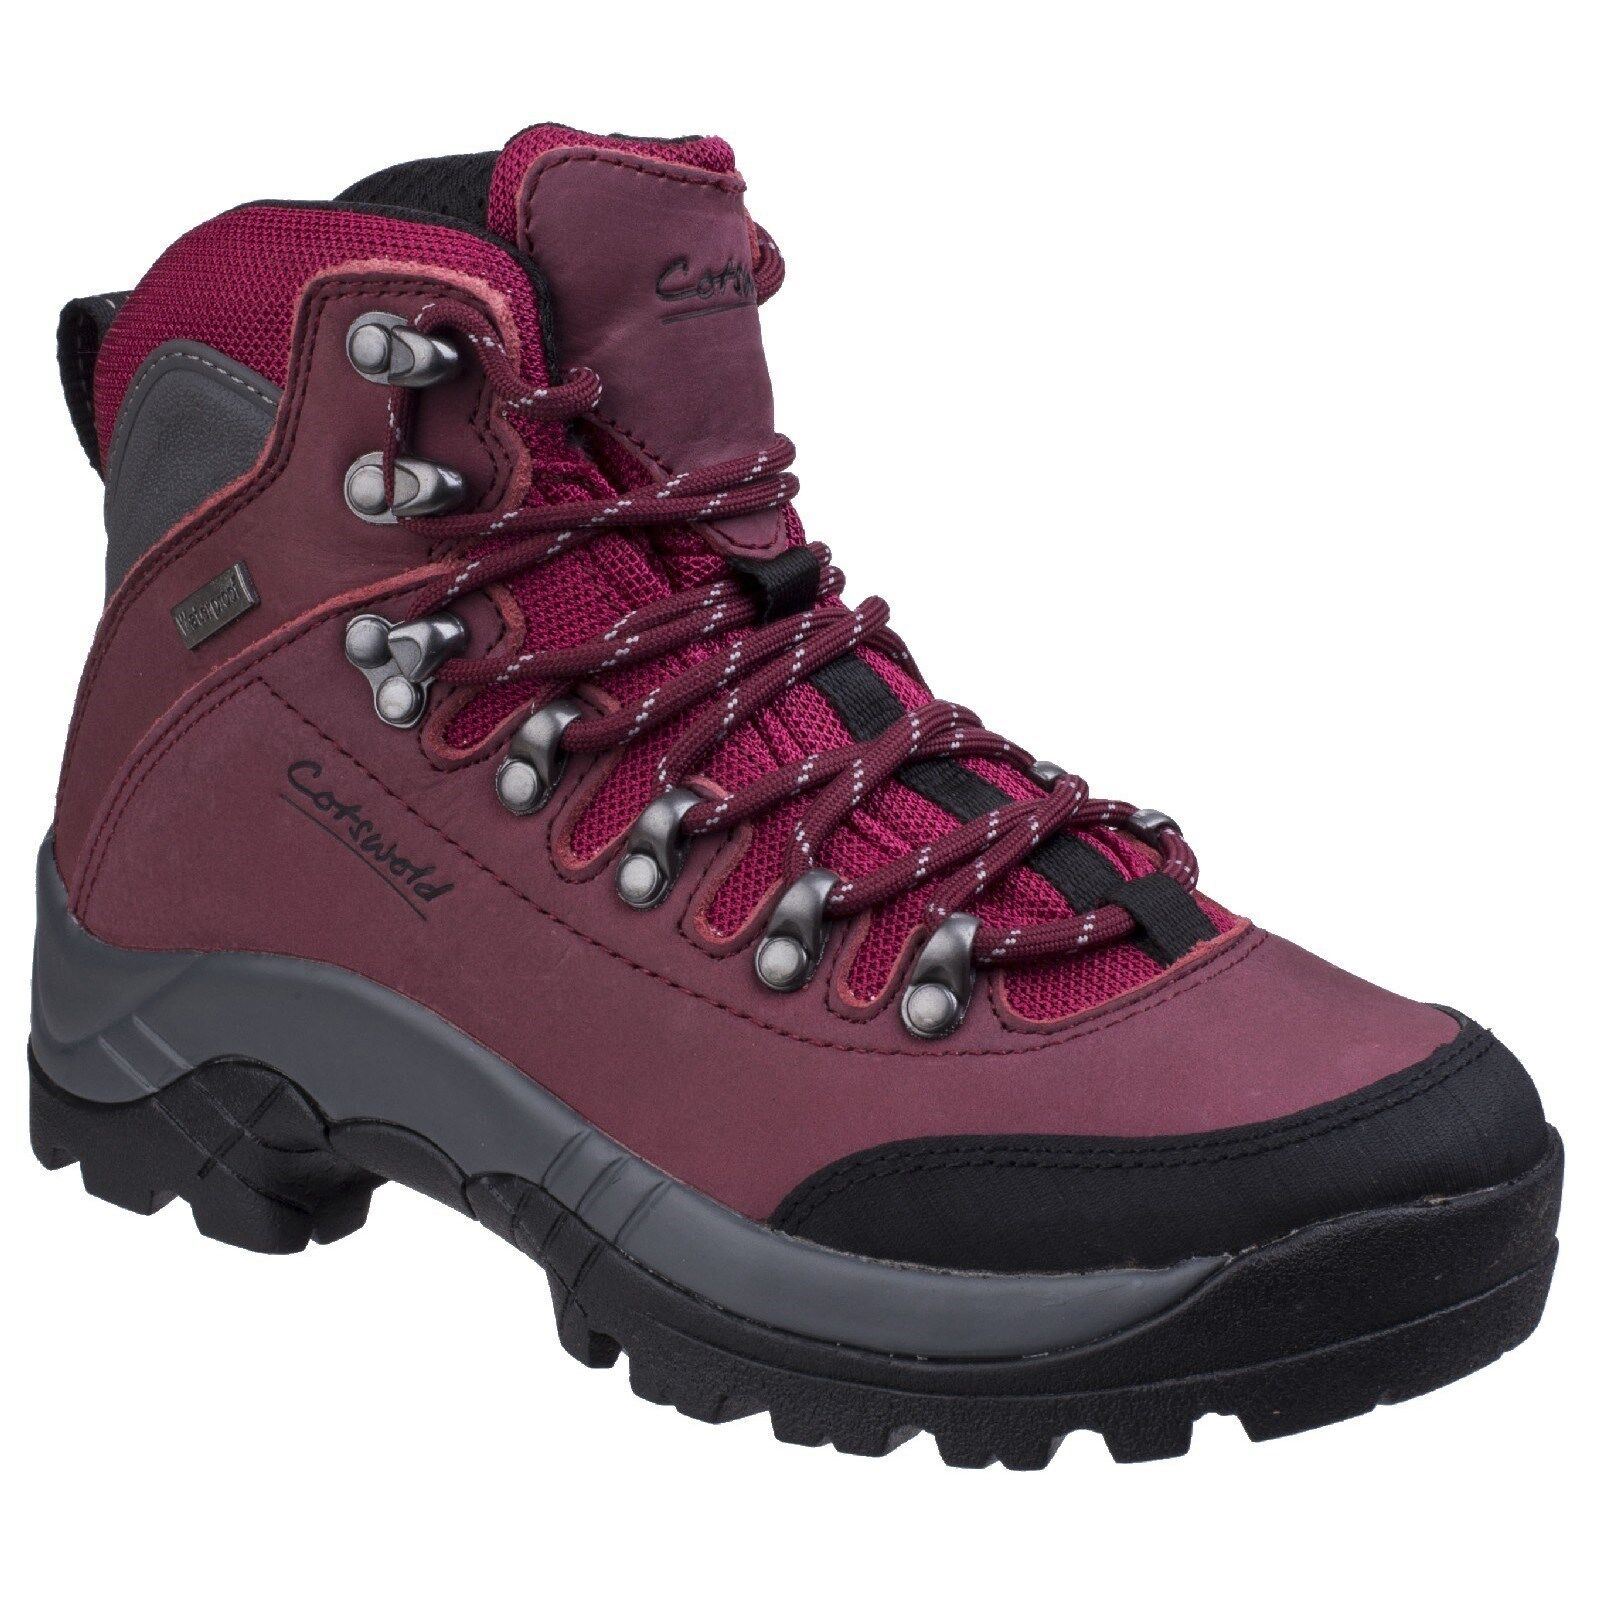 Zapatos promocionales para hombres y mujeres Cotswold Westonbirt Hiker Red Leather Waterproof Walking Trekking Boots Ladies